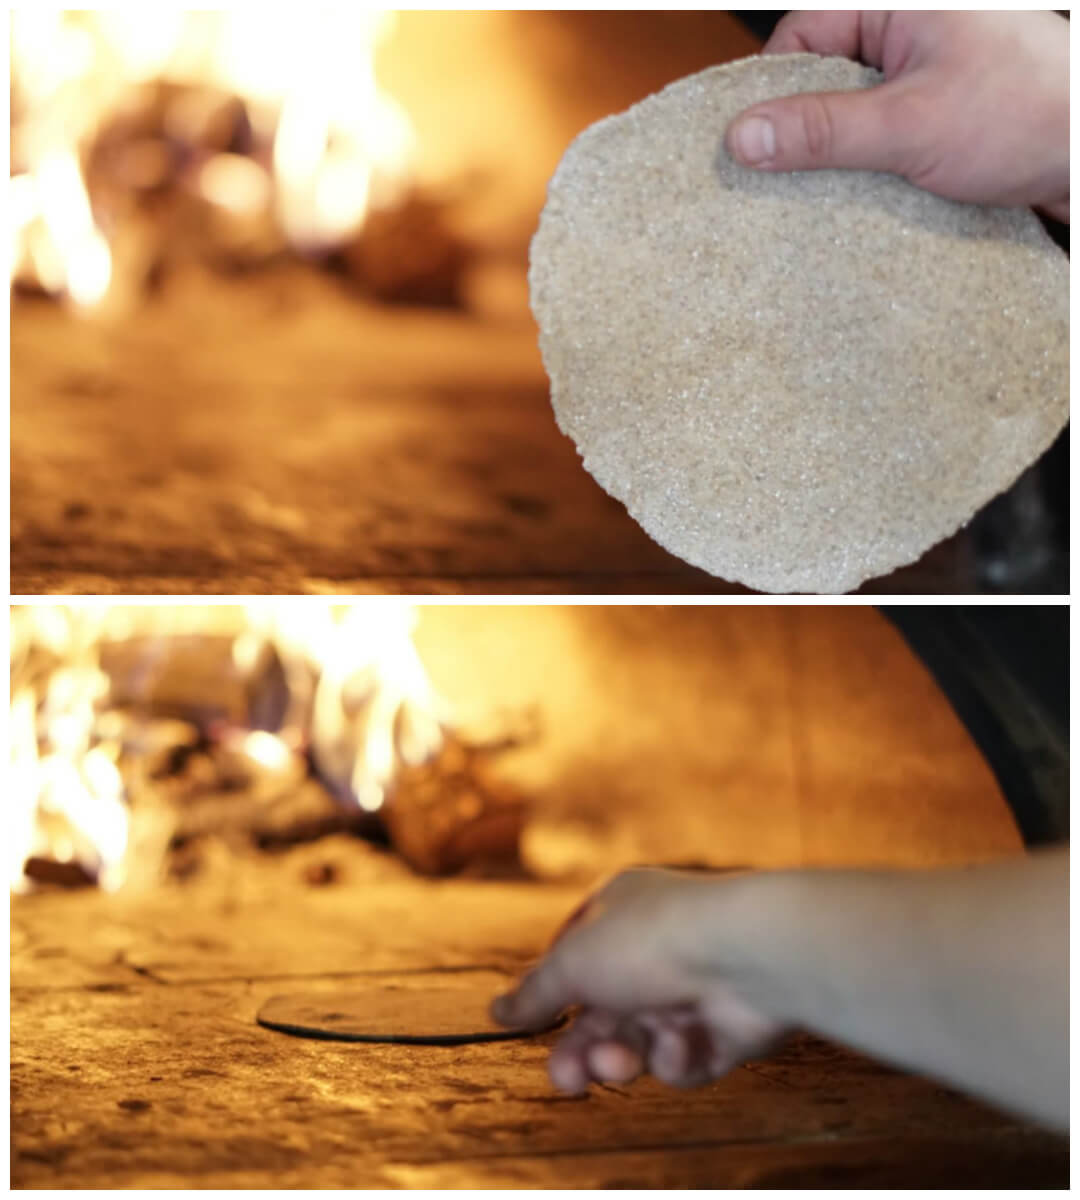 Nordic flatbread is traditionally cooked in a wood-fired oven